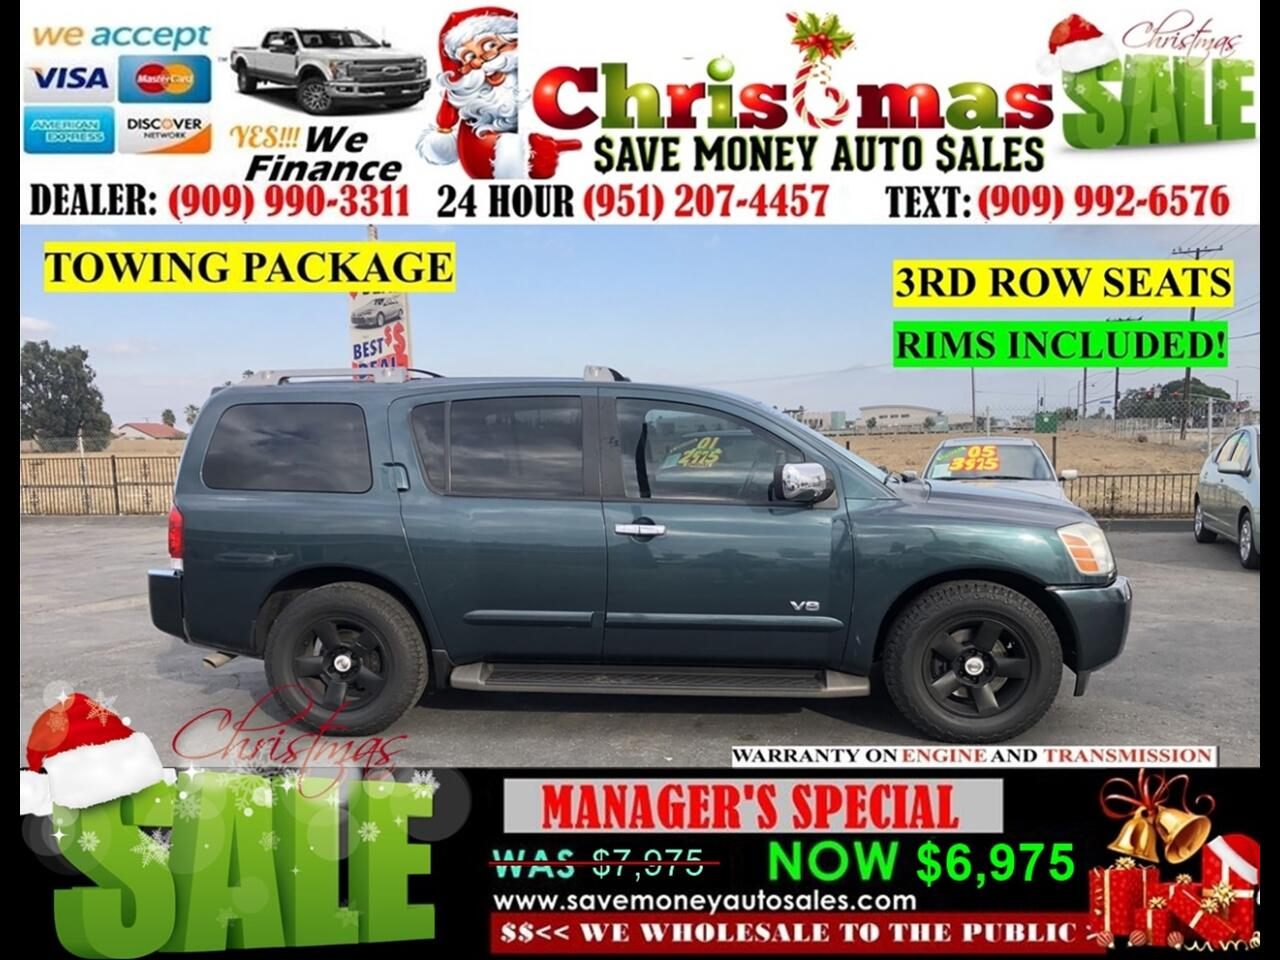 2007 Nissan Armada LE 2WD > 3RD ROW SEAT> VERY CLEAN